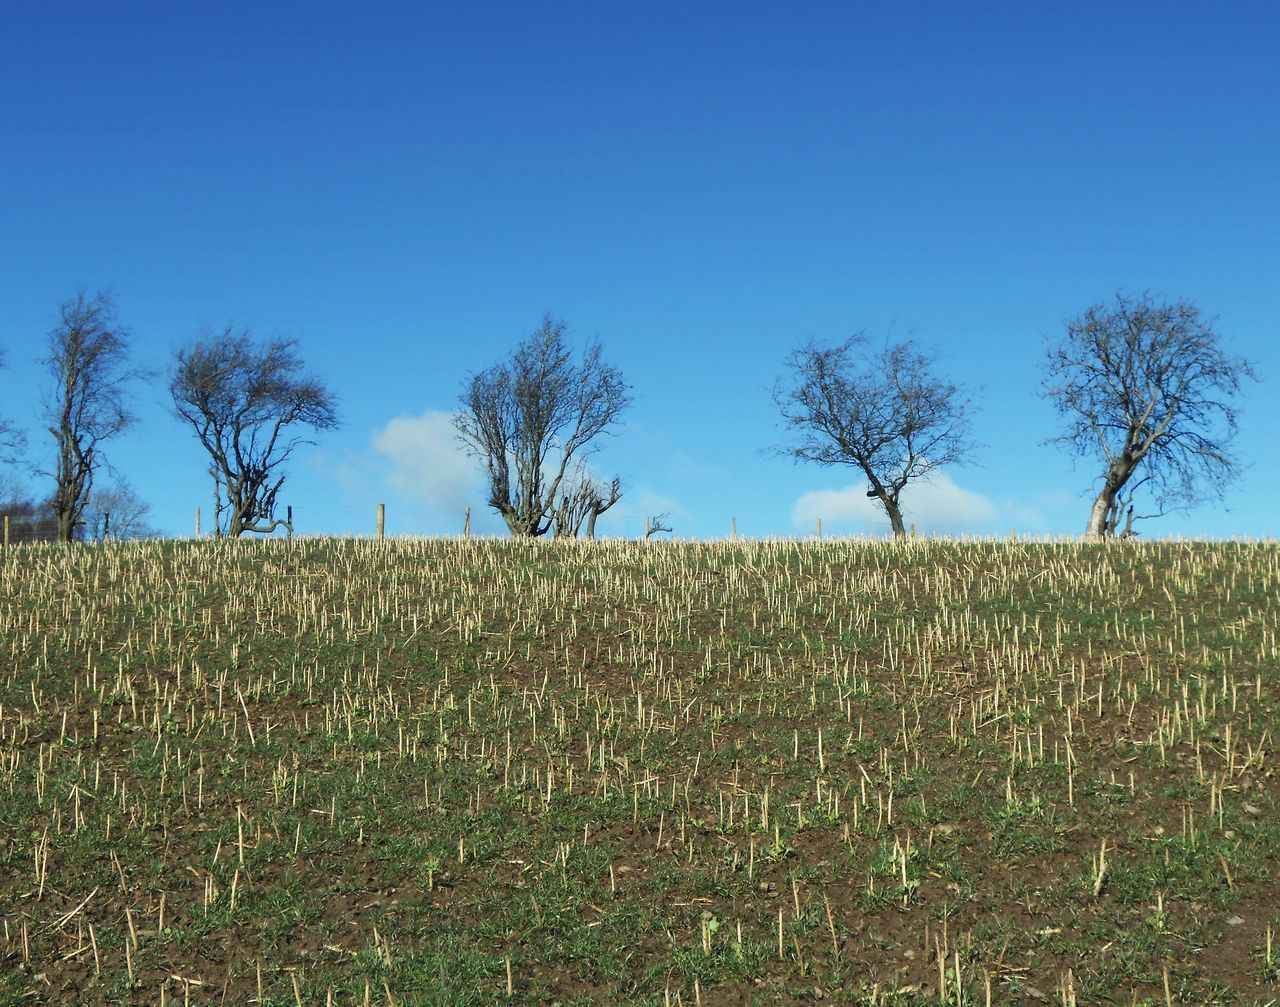 ... alined ... Agriculture Rural Scene Blue Sky Field Plant Tree Landscape Scenics Outdoors Trees Order Countryside Rural Winter Clear Sky Growth Wales Powys поле деревья зима Pattern Human Activity